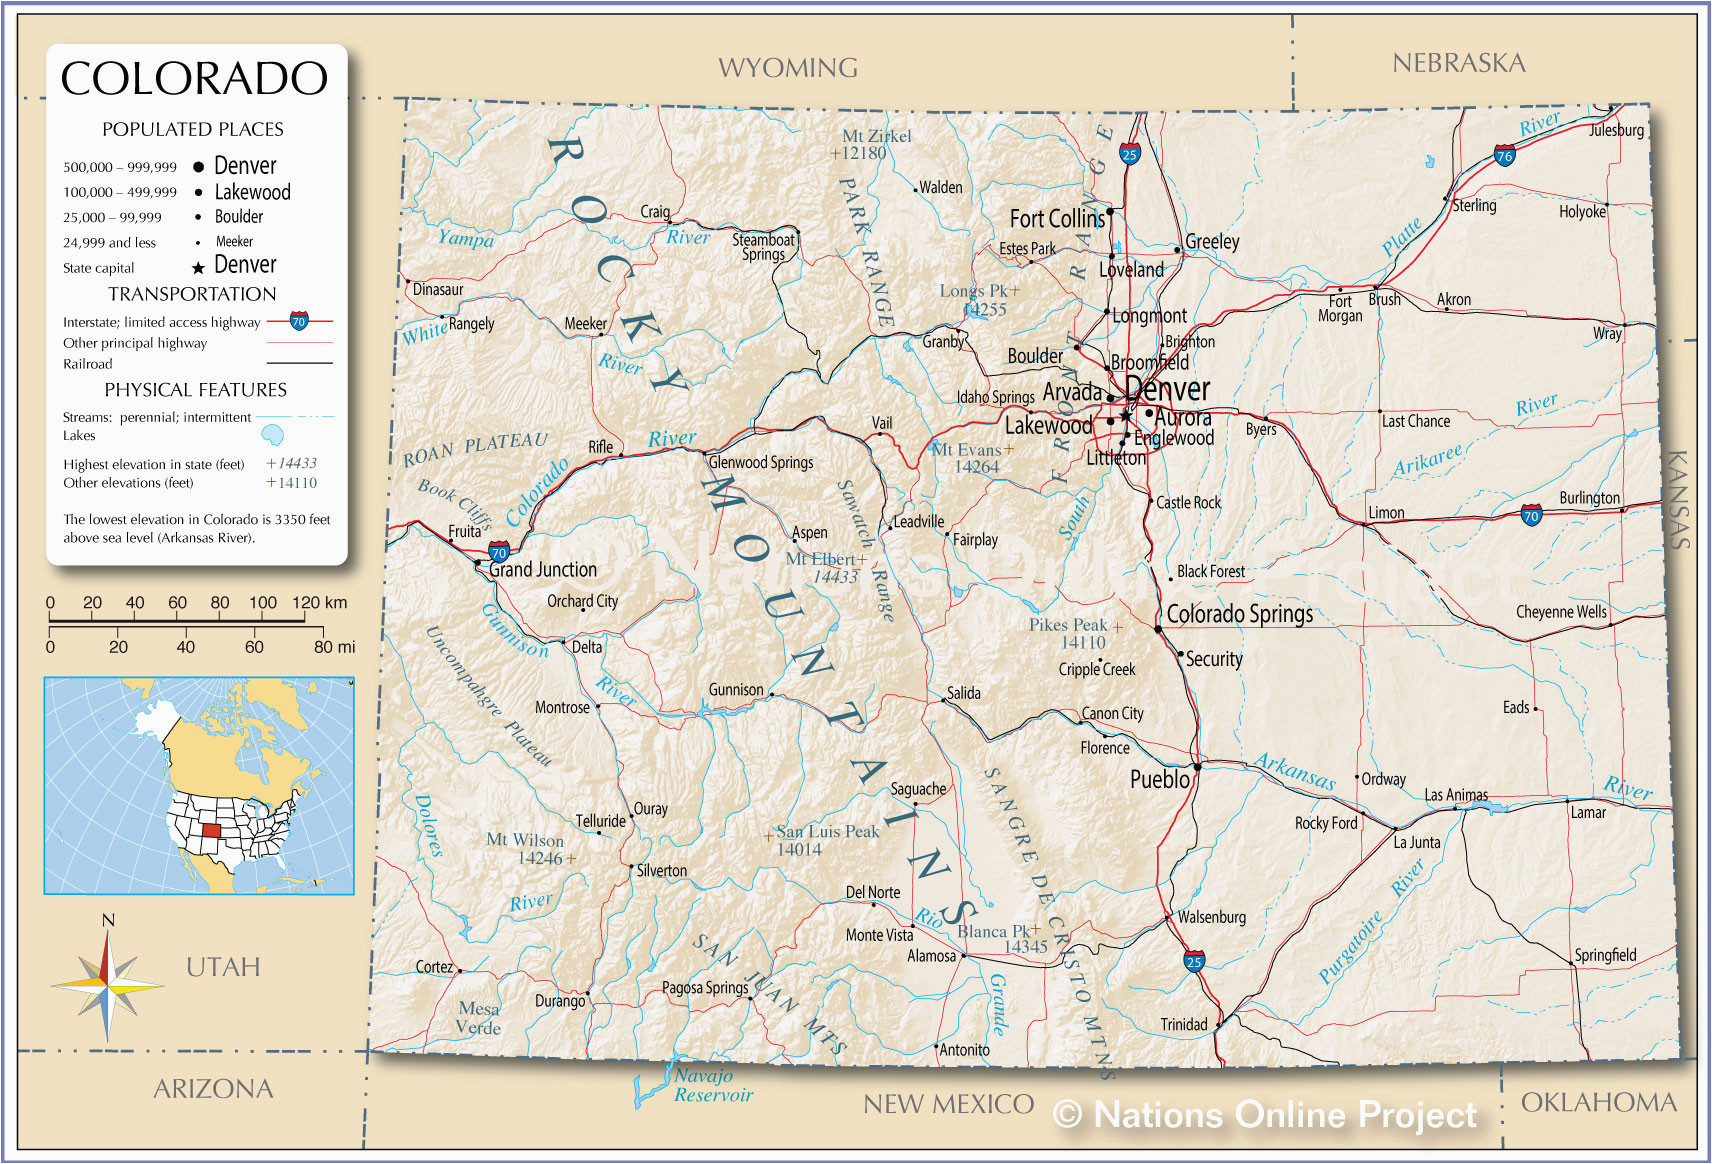 Map Of Colorado Mountain Ranges Colorado Mountain Range Map | secretmuseum